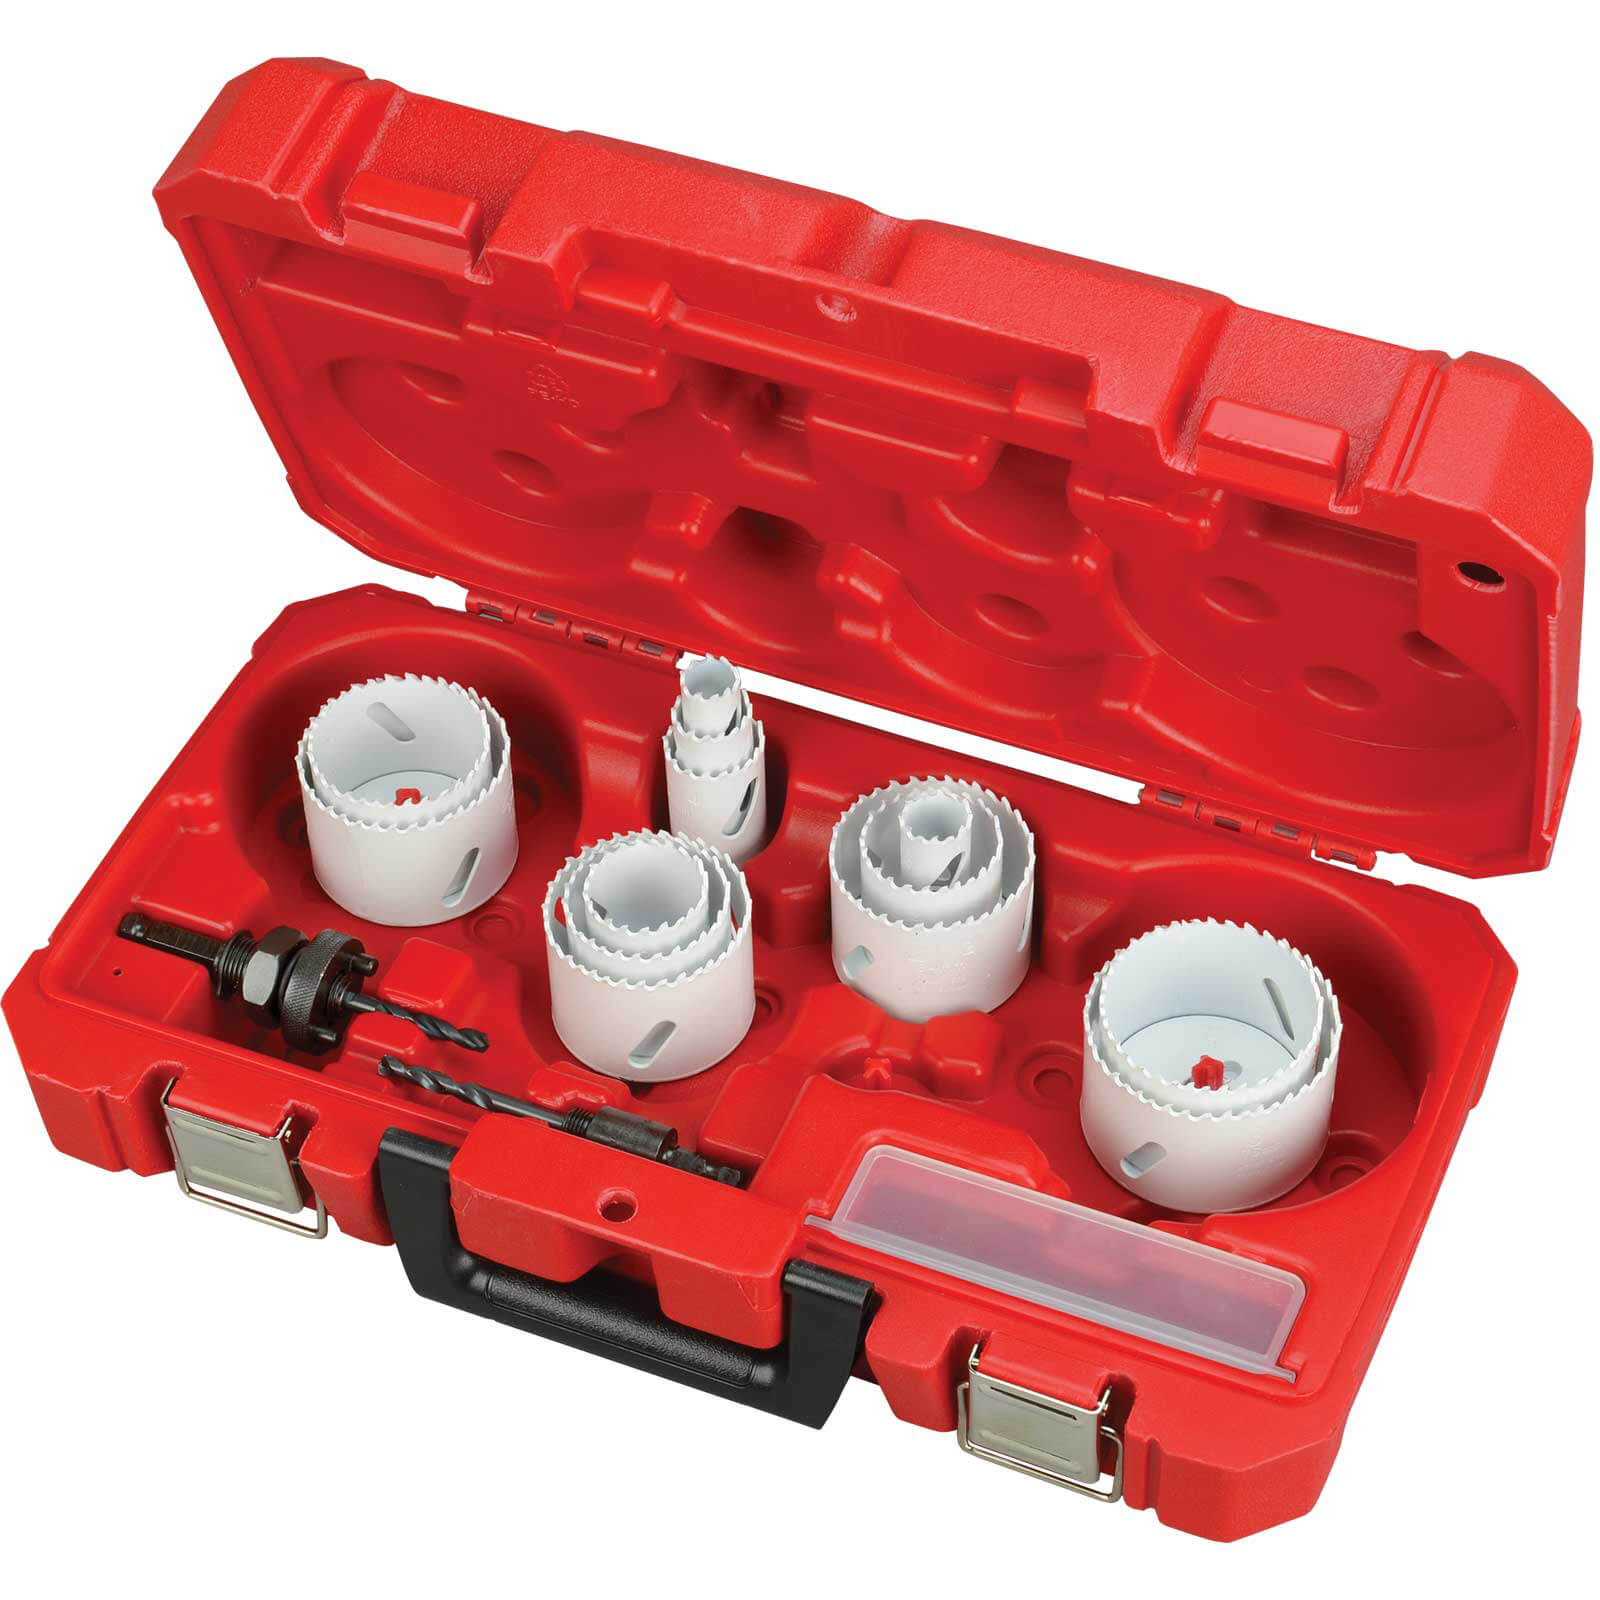 Image of Milwaukee 17 Piece Hole Dozer Bi-Metal Holesaw Set